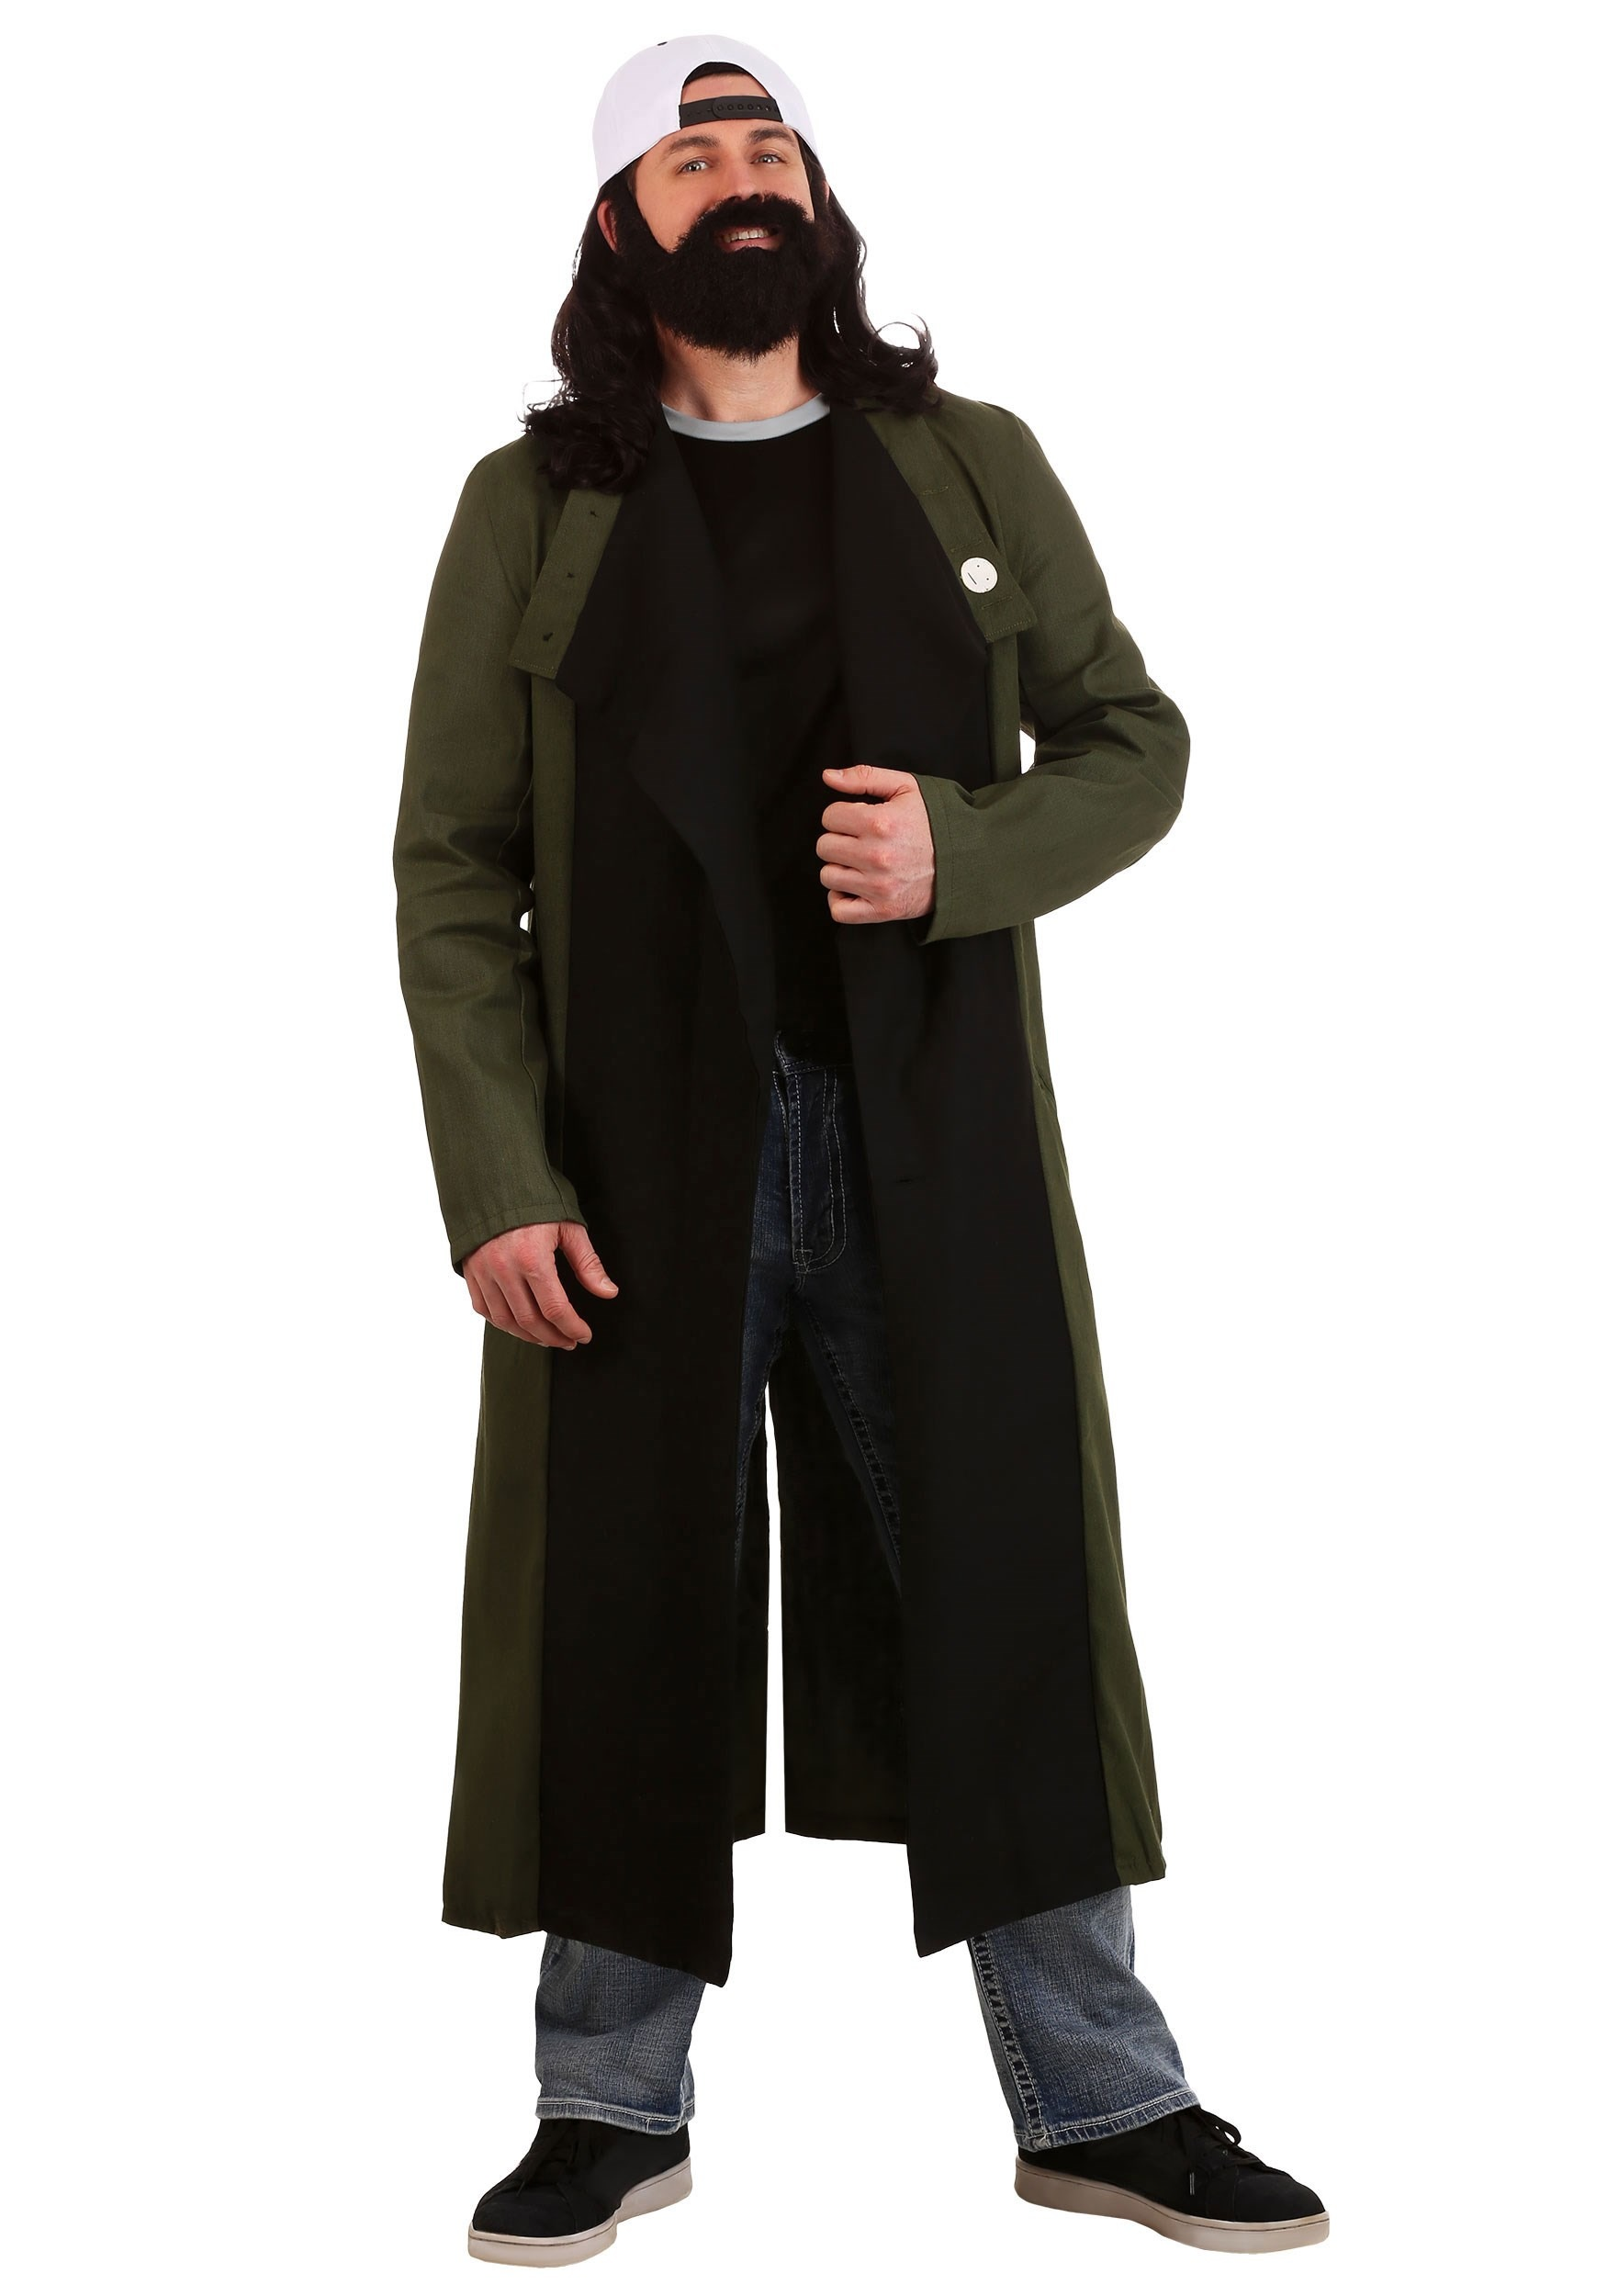 Jay and Silent Bob Silent Bob Costume for Plus Size   Officially licensed